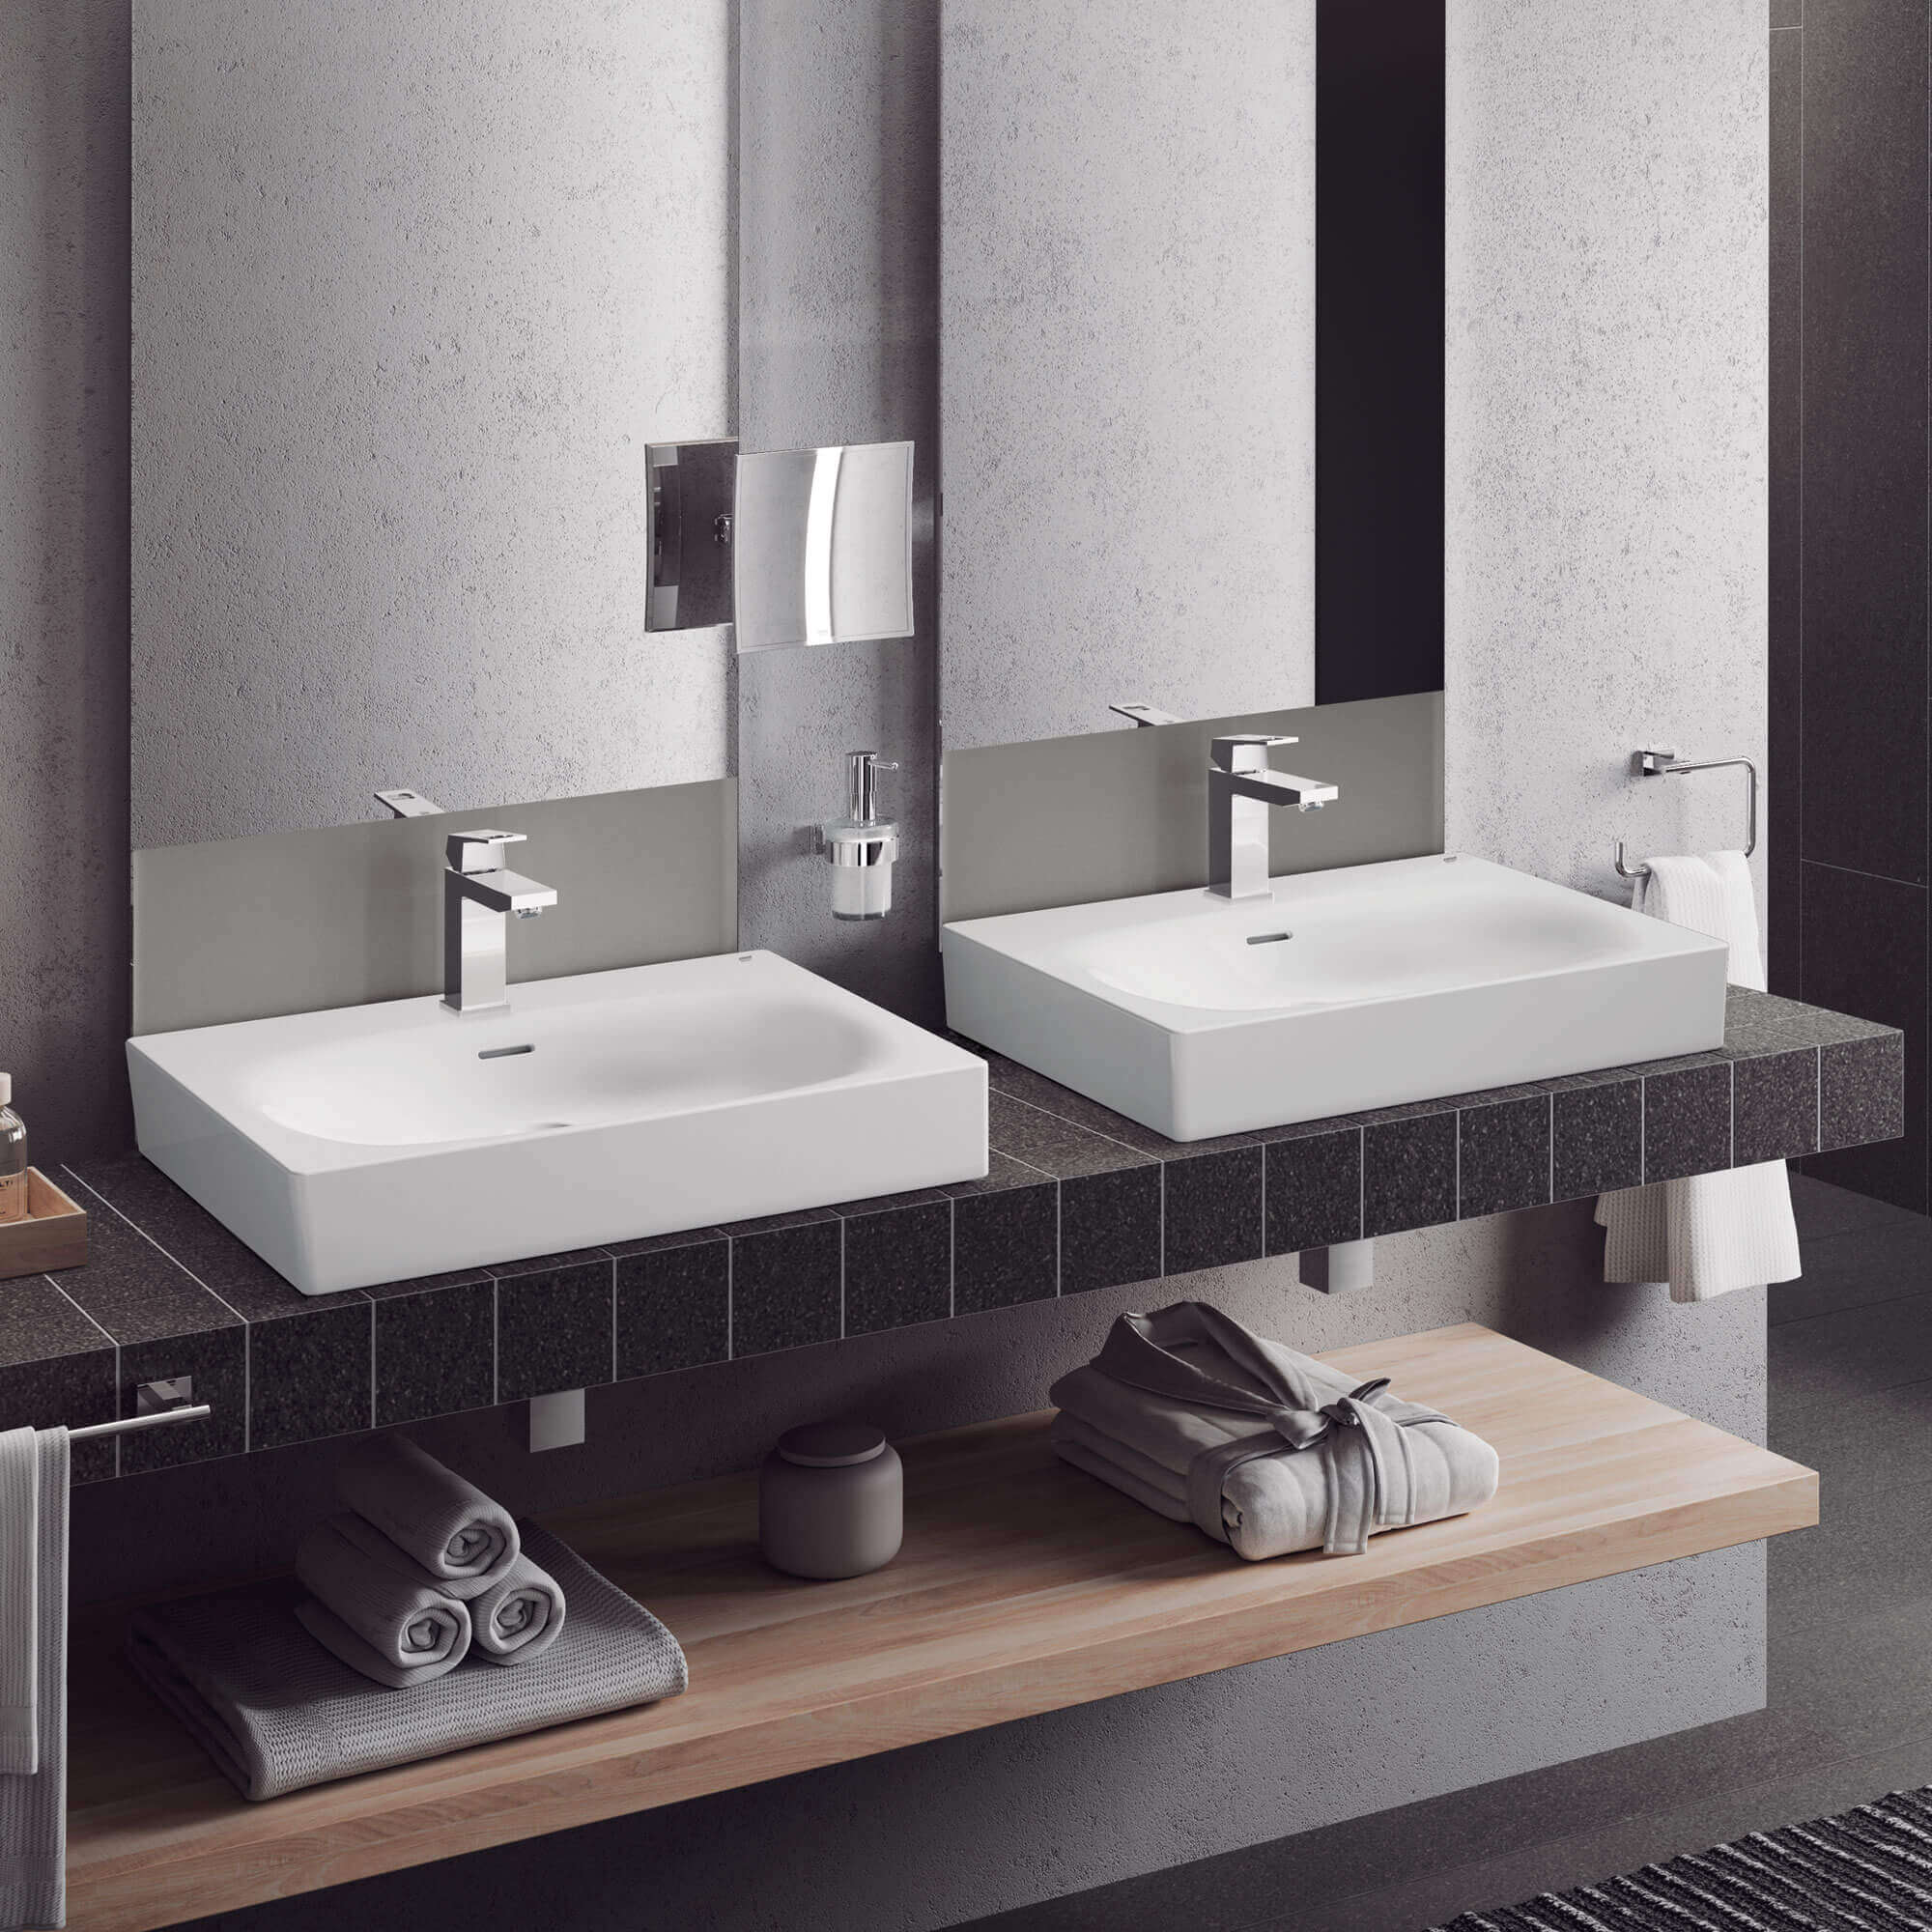 Bathroom Kitchen Faucets Shower Heads Grohe Us